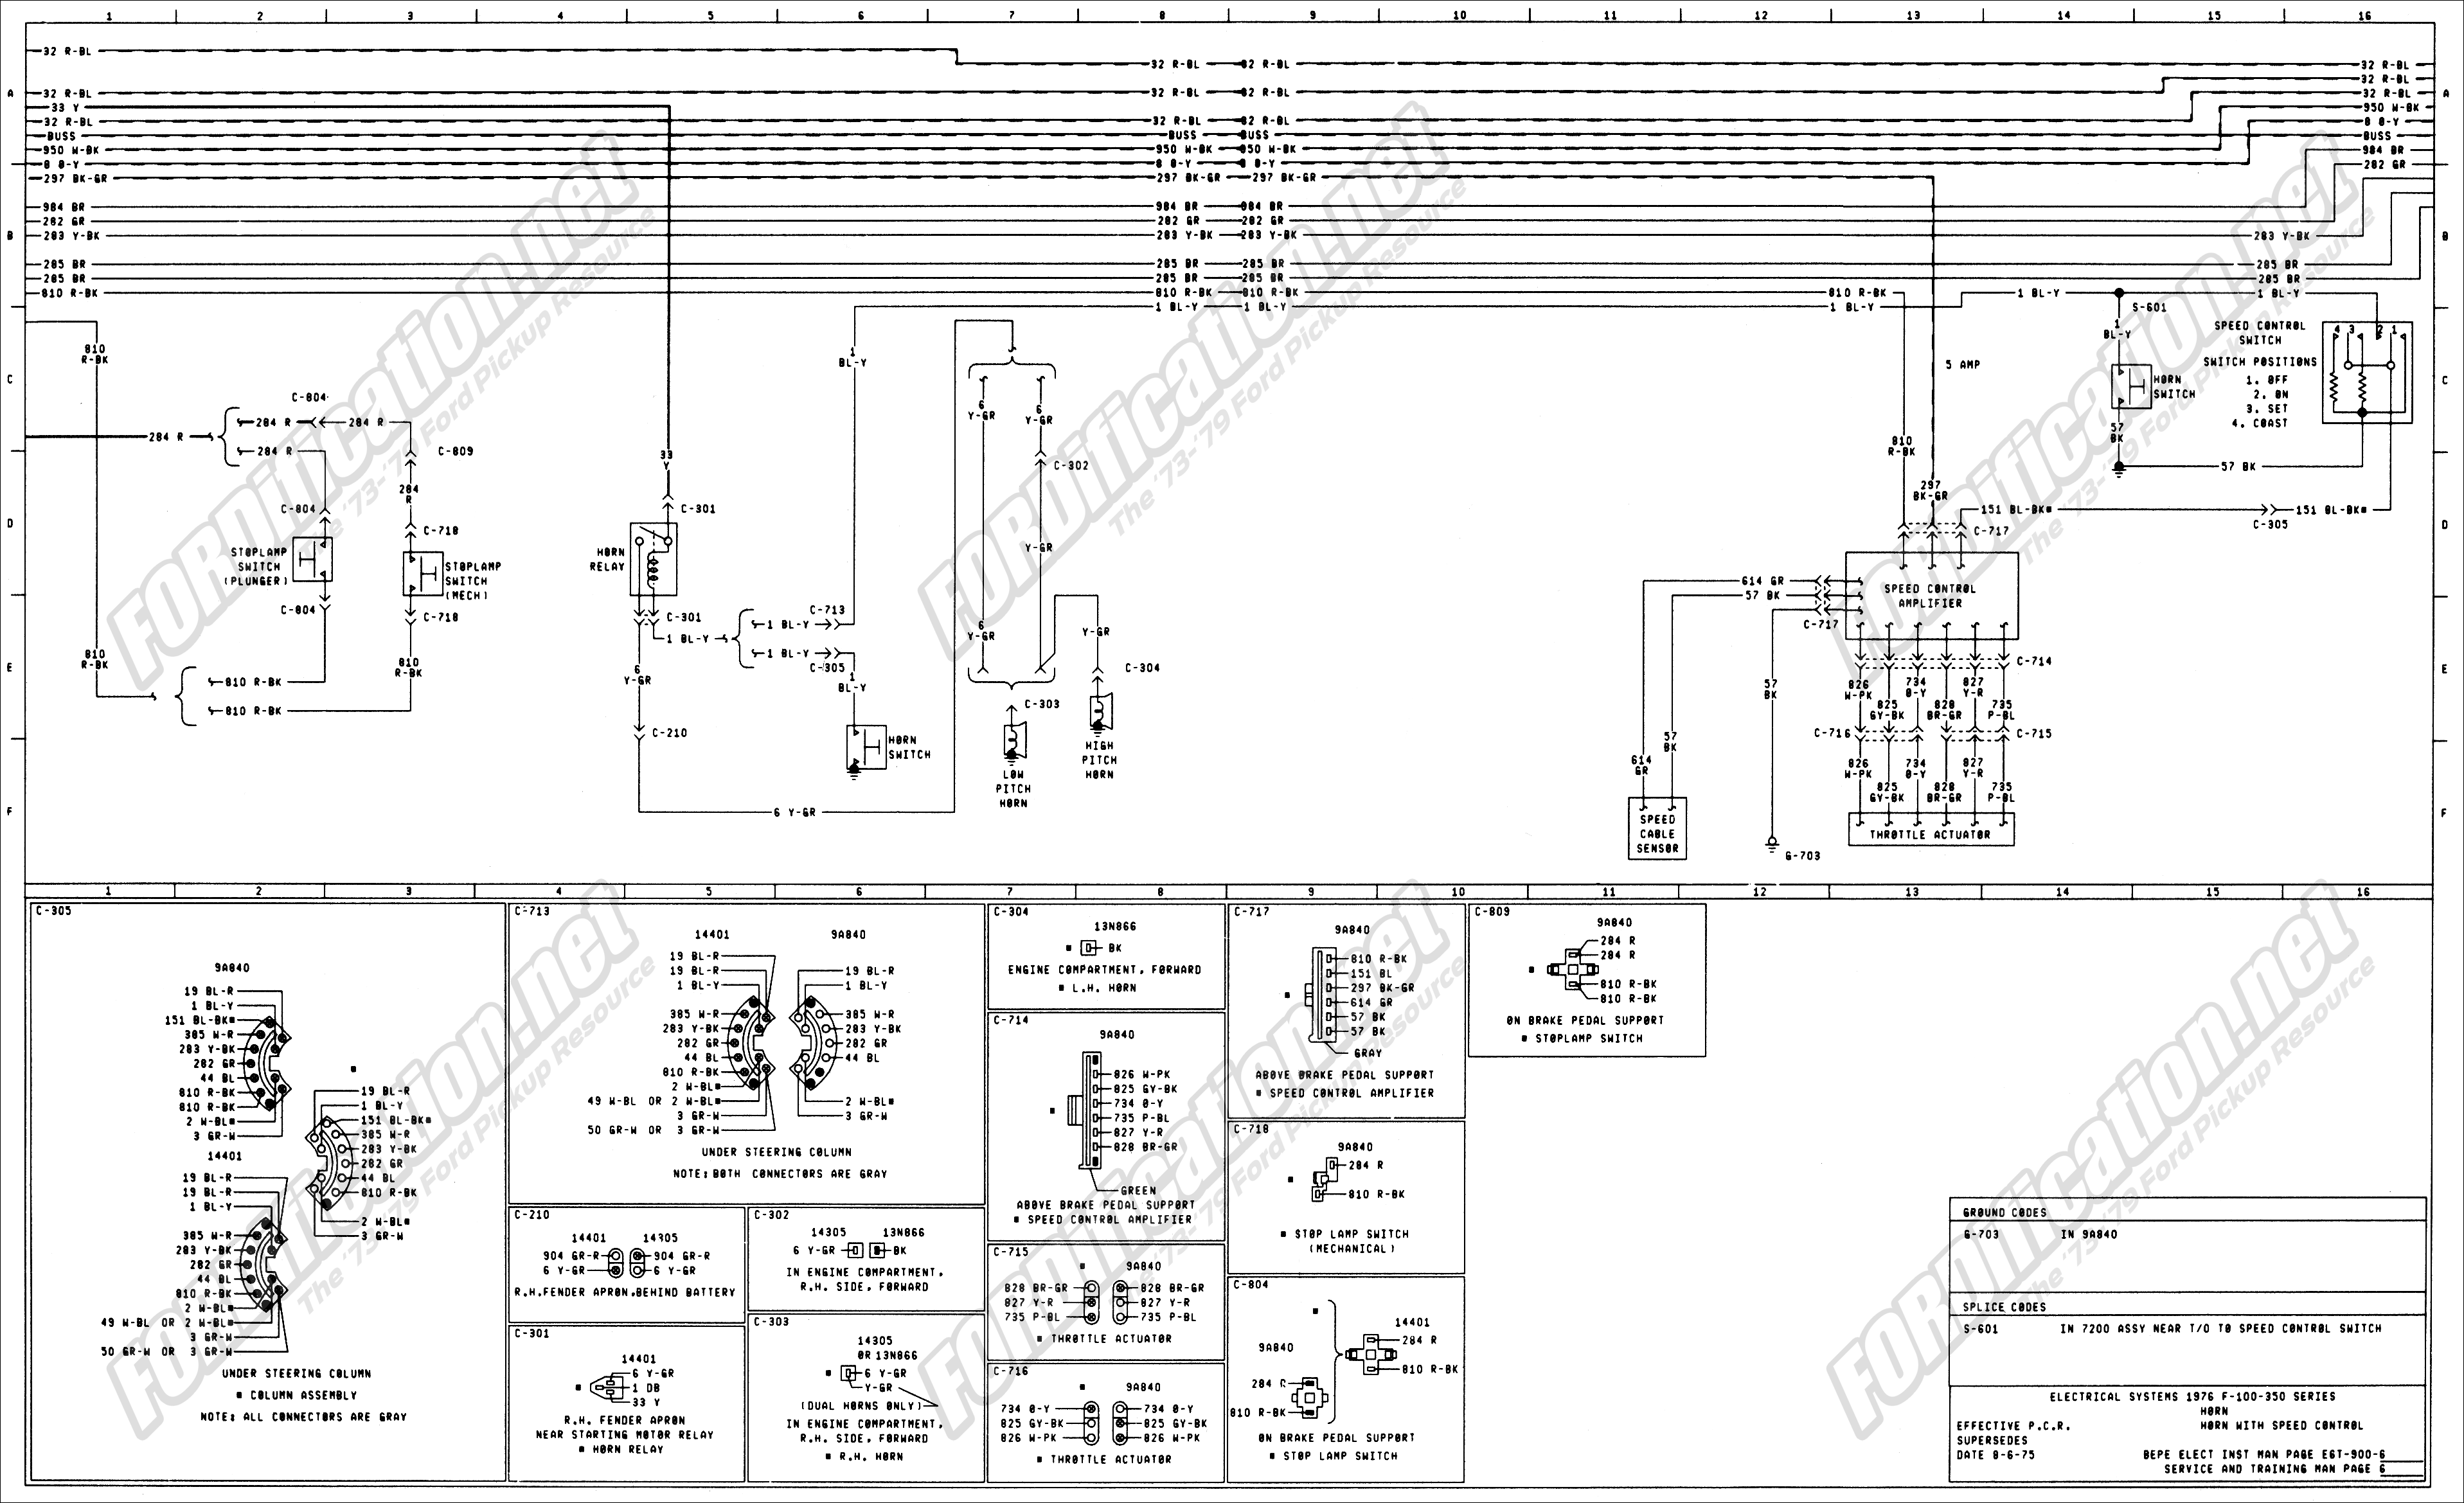 1973 1979 ford truck wiring diagrams schematics 2007 ford f750 wiring  diagram 2007 ford f750 wiring diagram